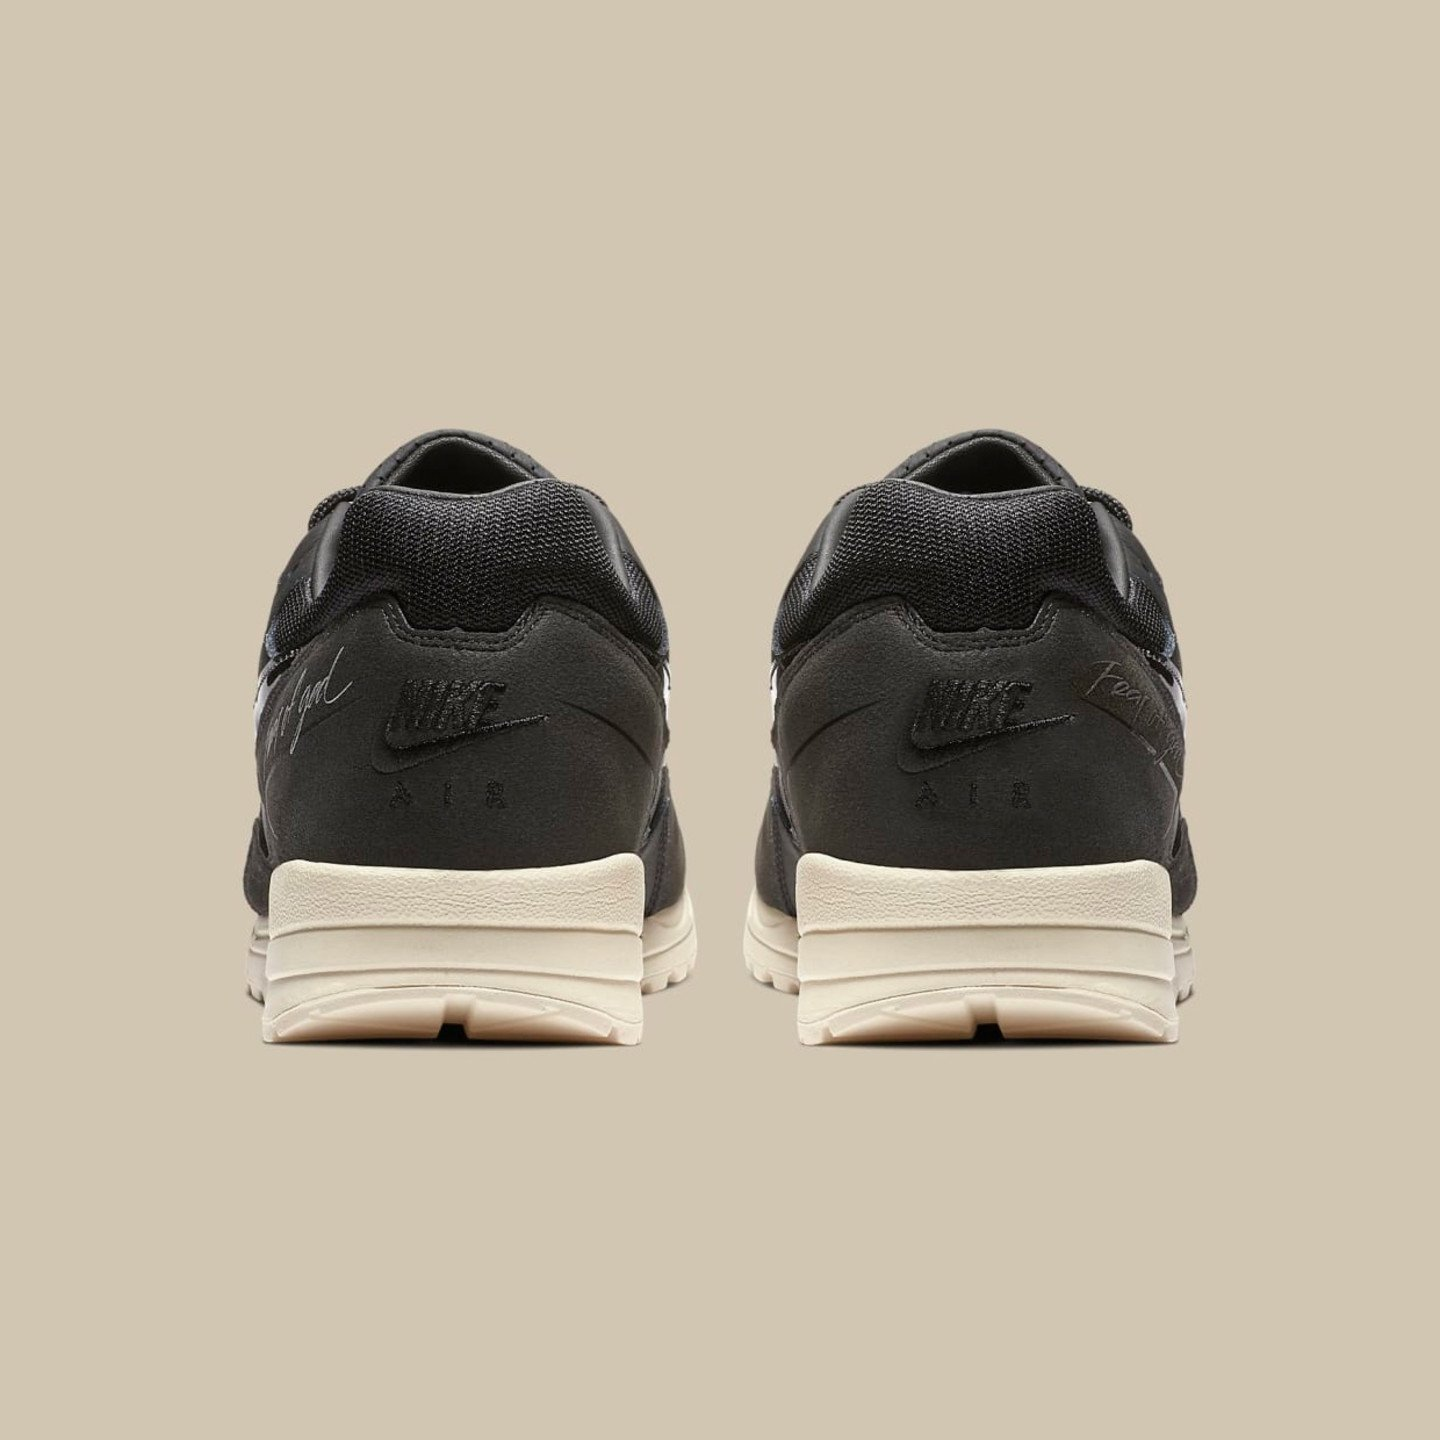 Nike Air Skylon II x Fear Of God Black / Sail / Fossil BQ2752-001